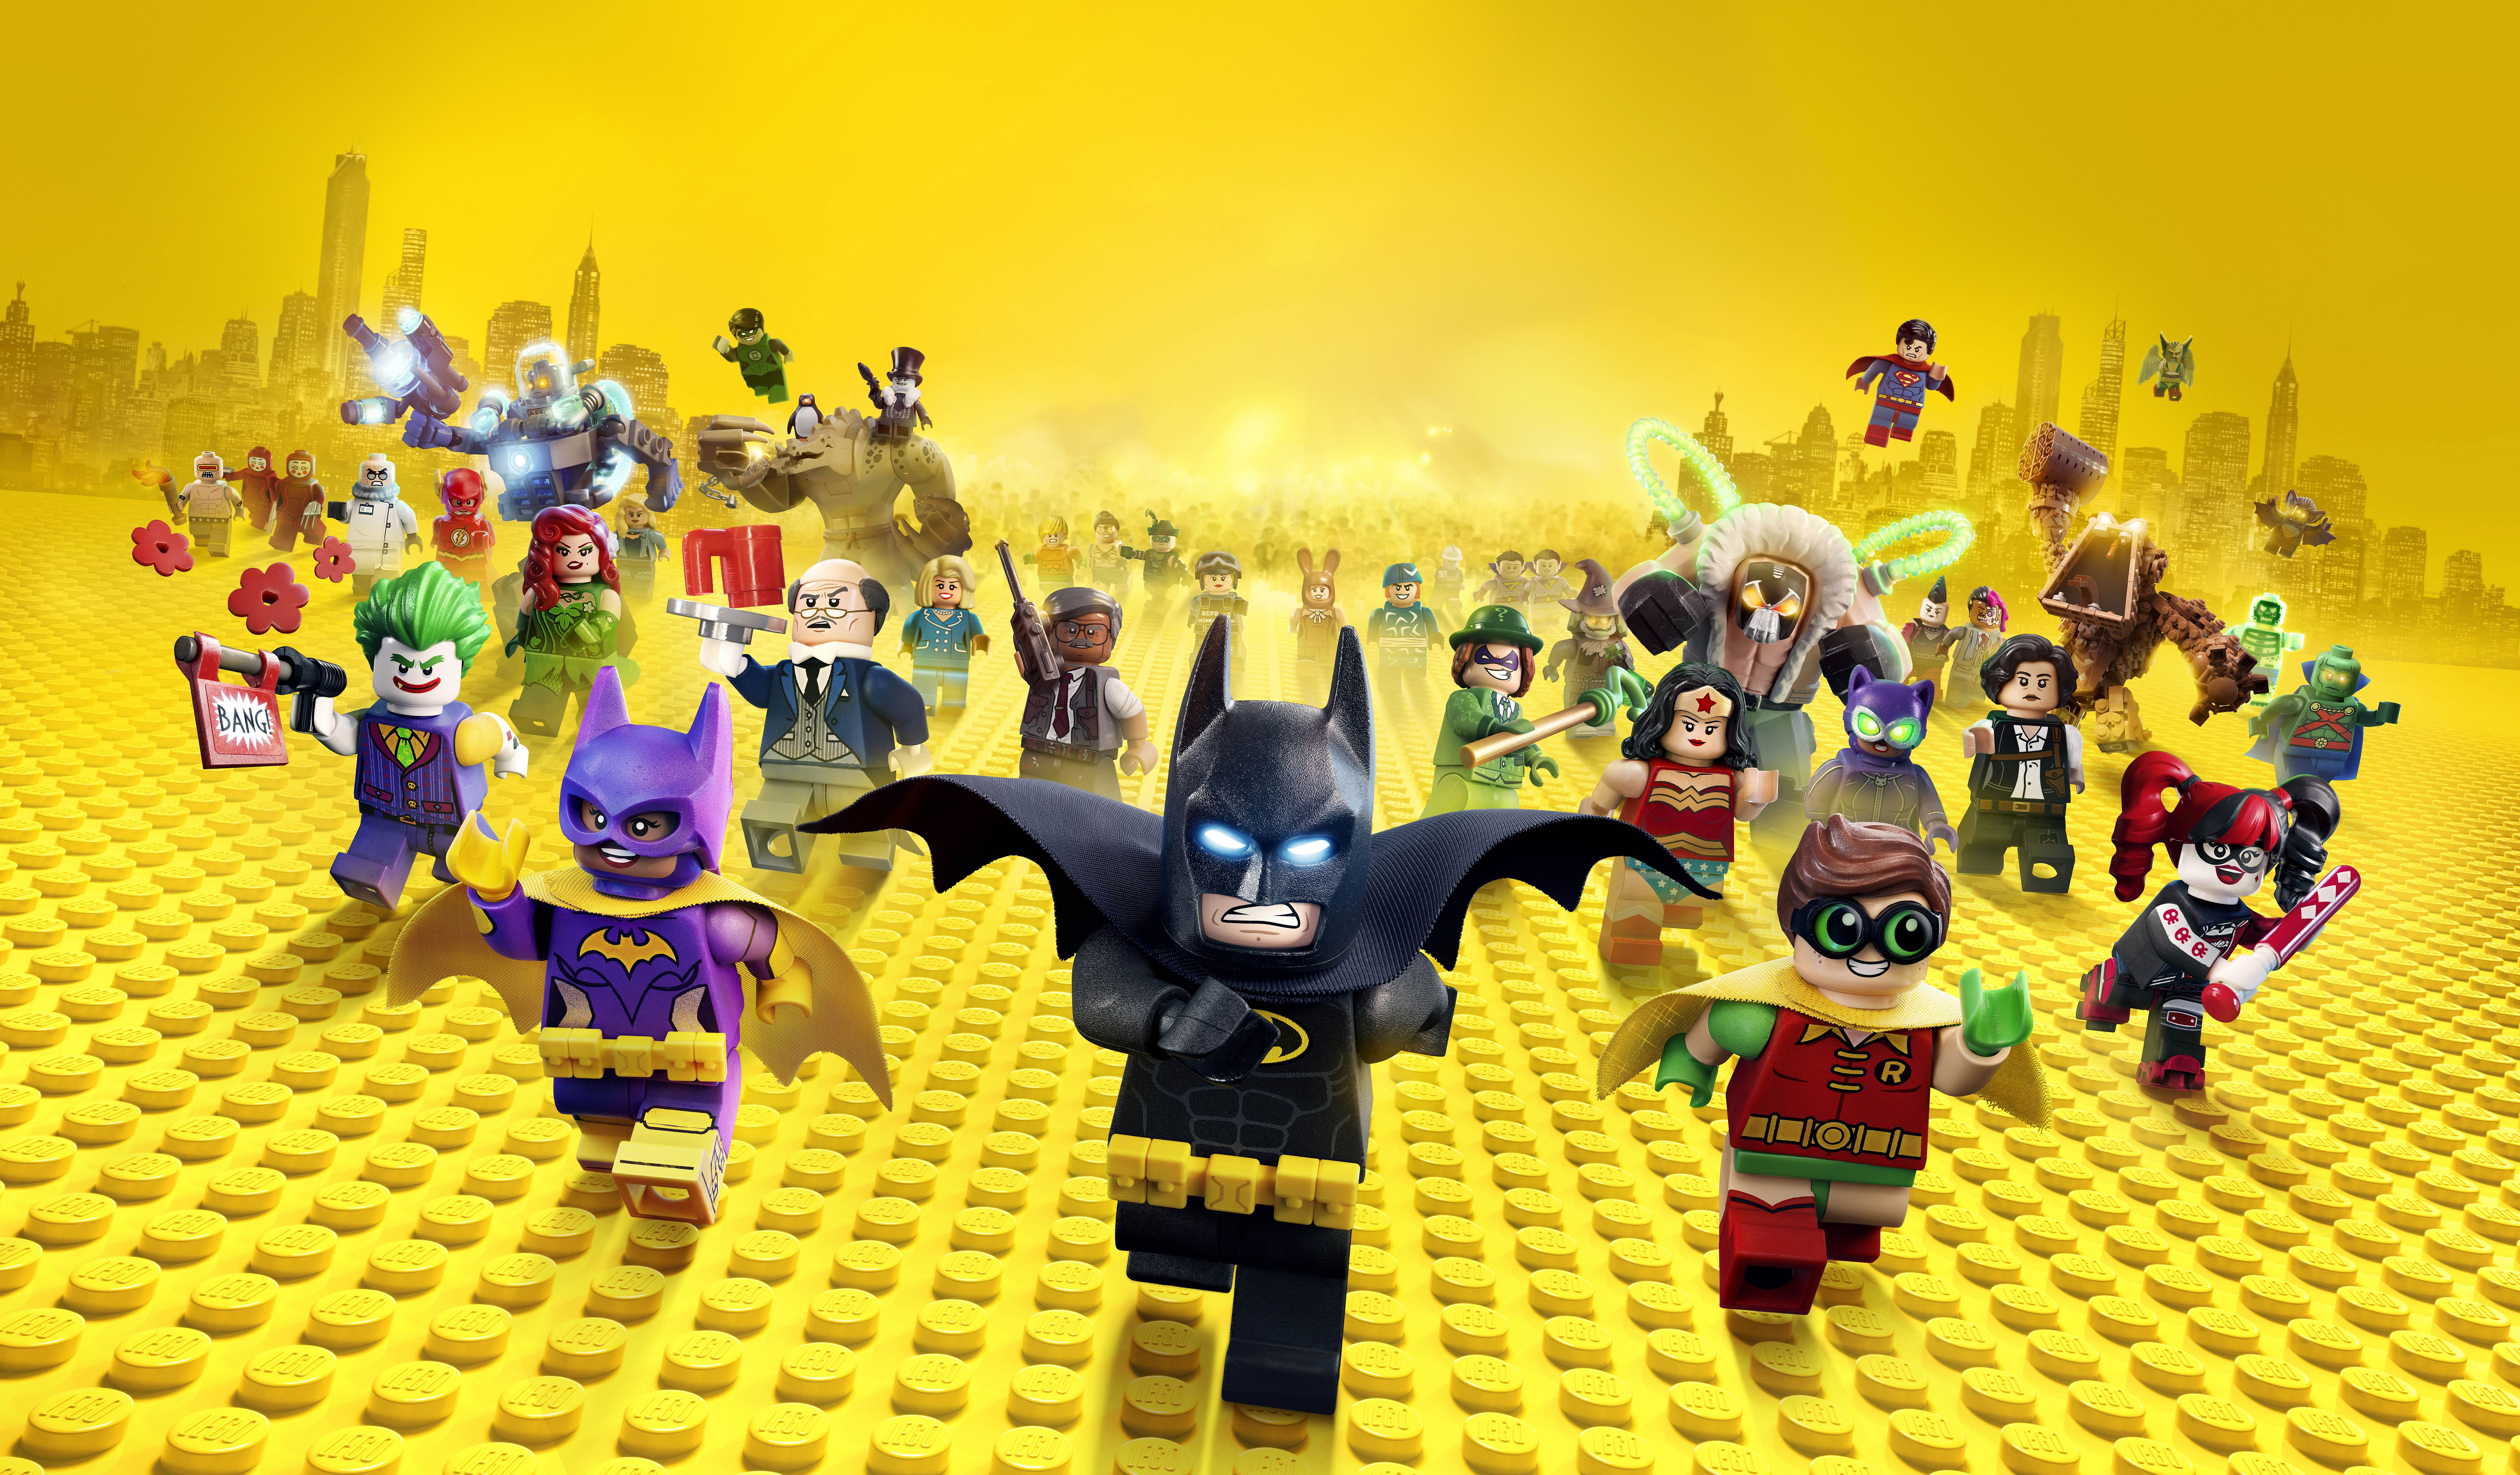 4k Lego Wallpapers Top Free 4k Lego Backgrounds Wallpaperaccess